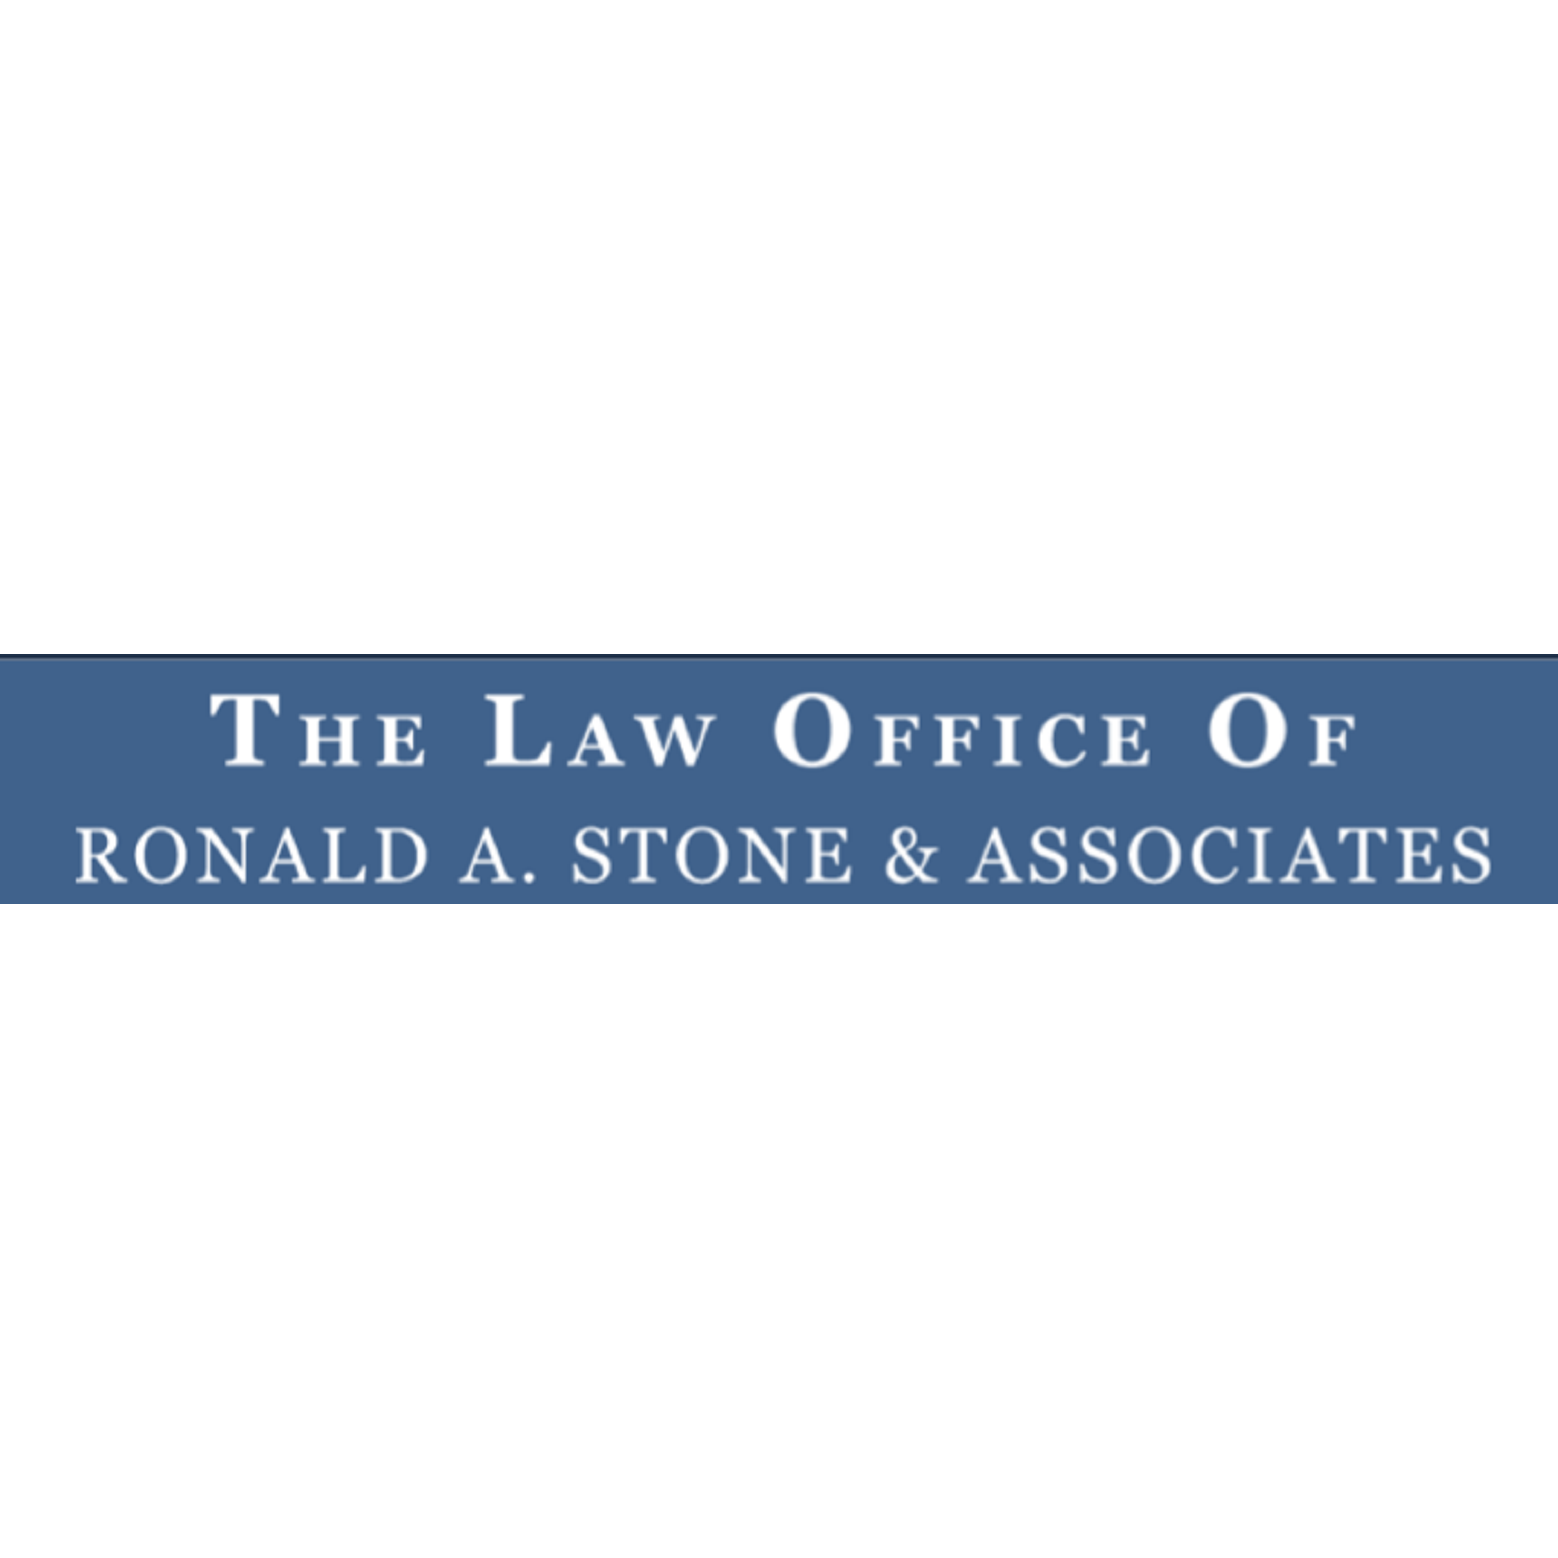 The Law Office of Ronald A. Stone & Associates